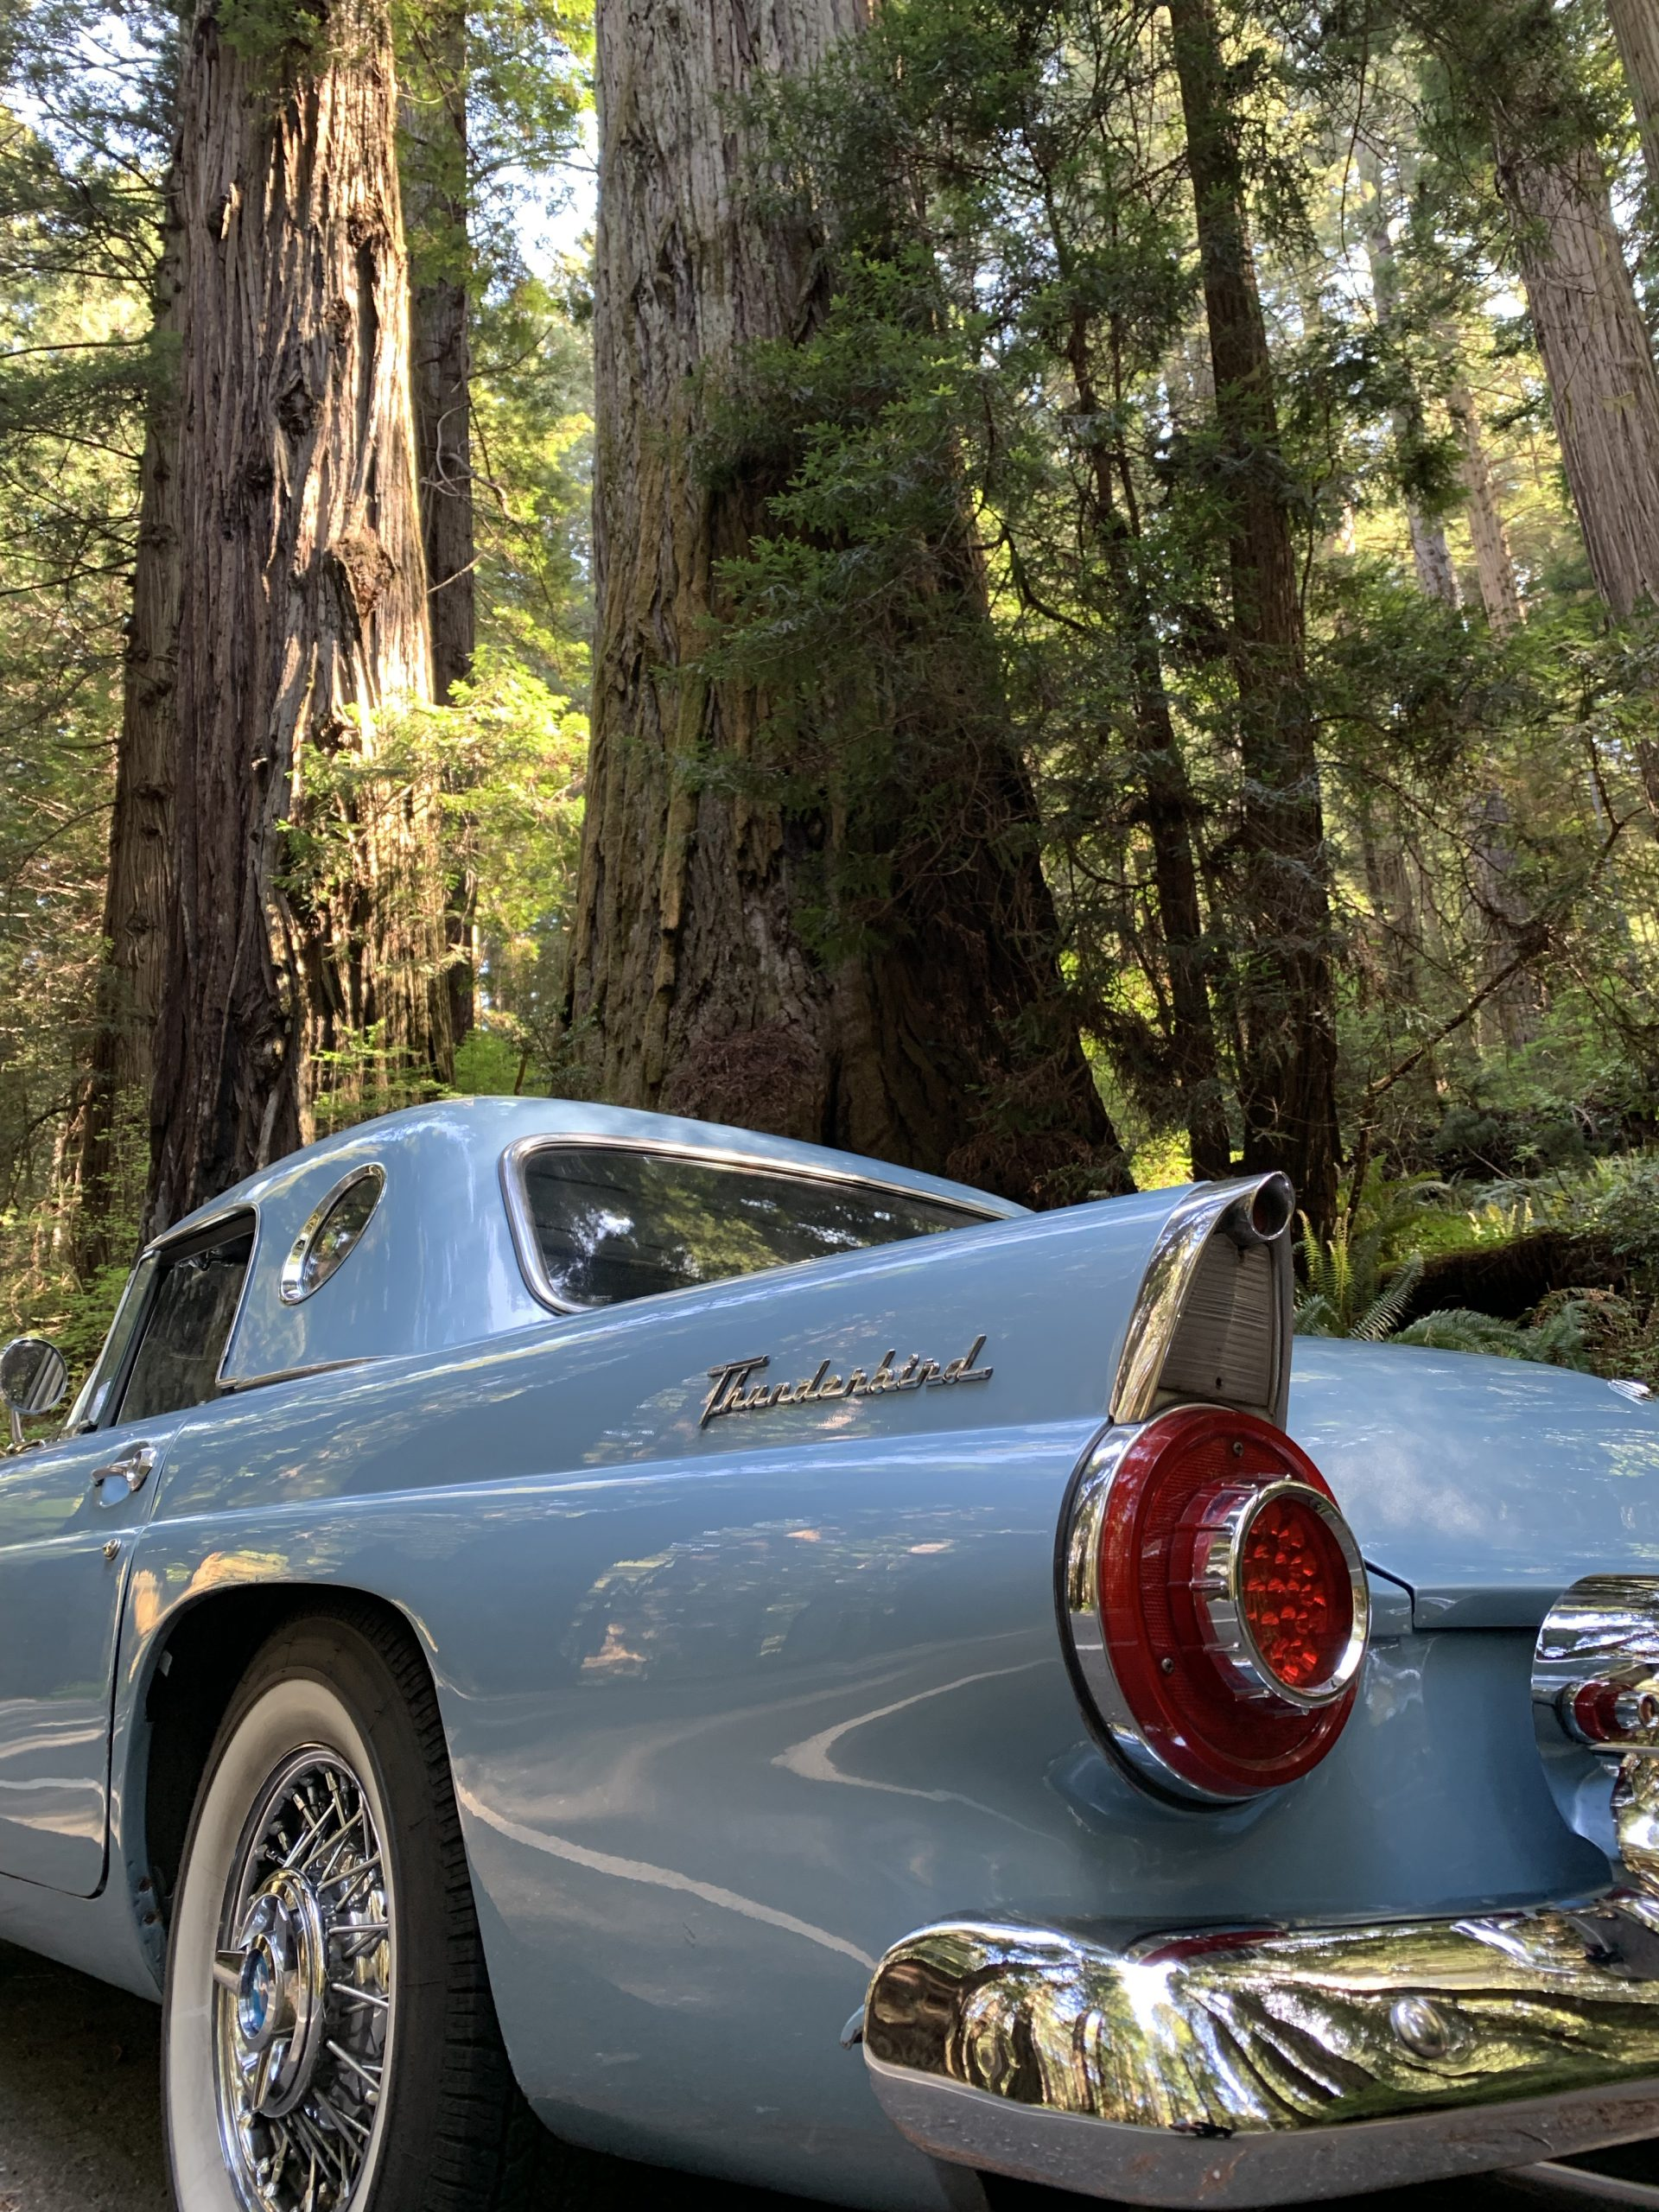 1956 Ford Thunderbird Rear Side By Redwood Trees